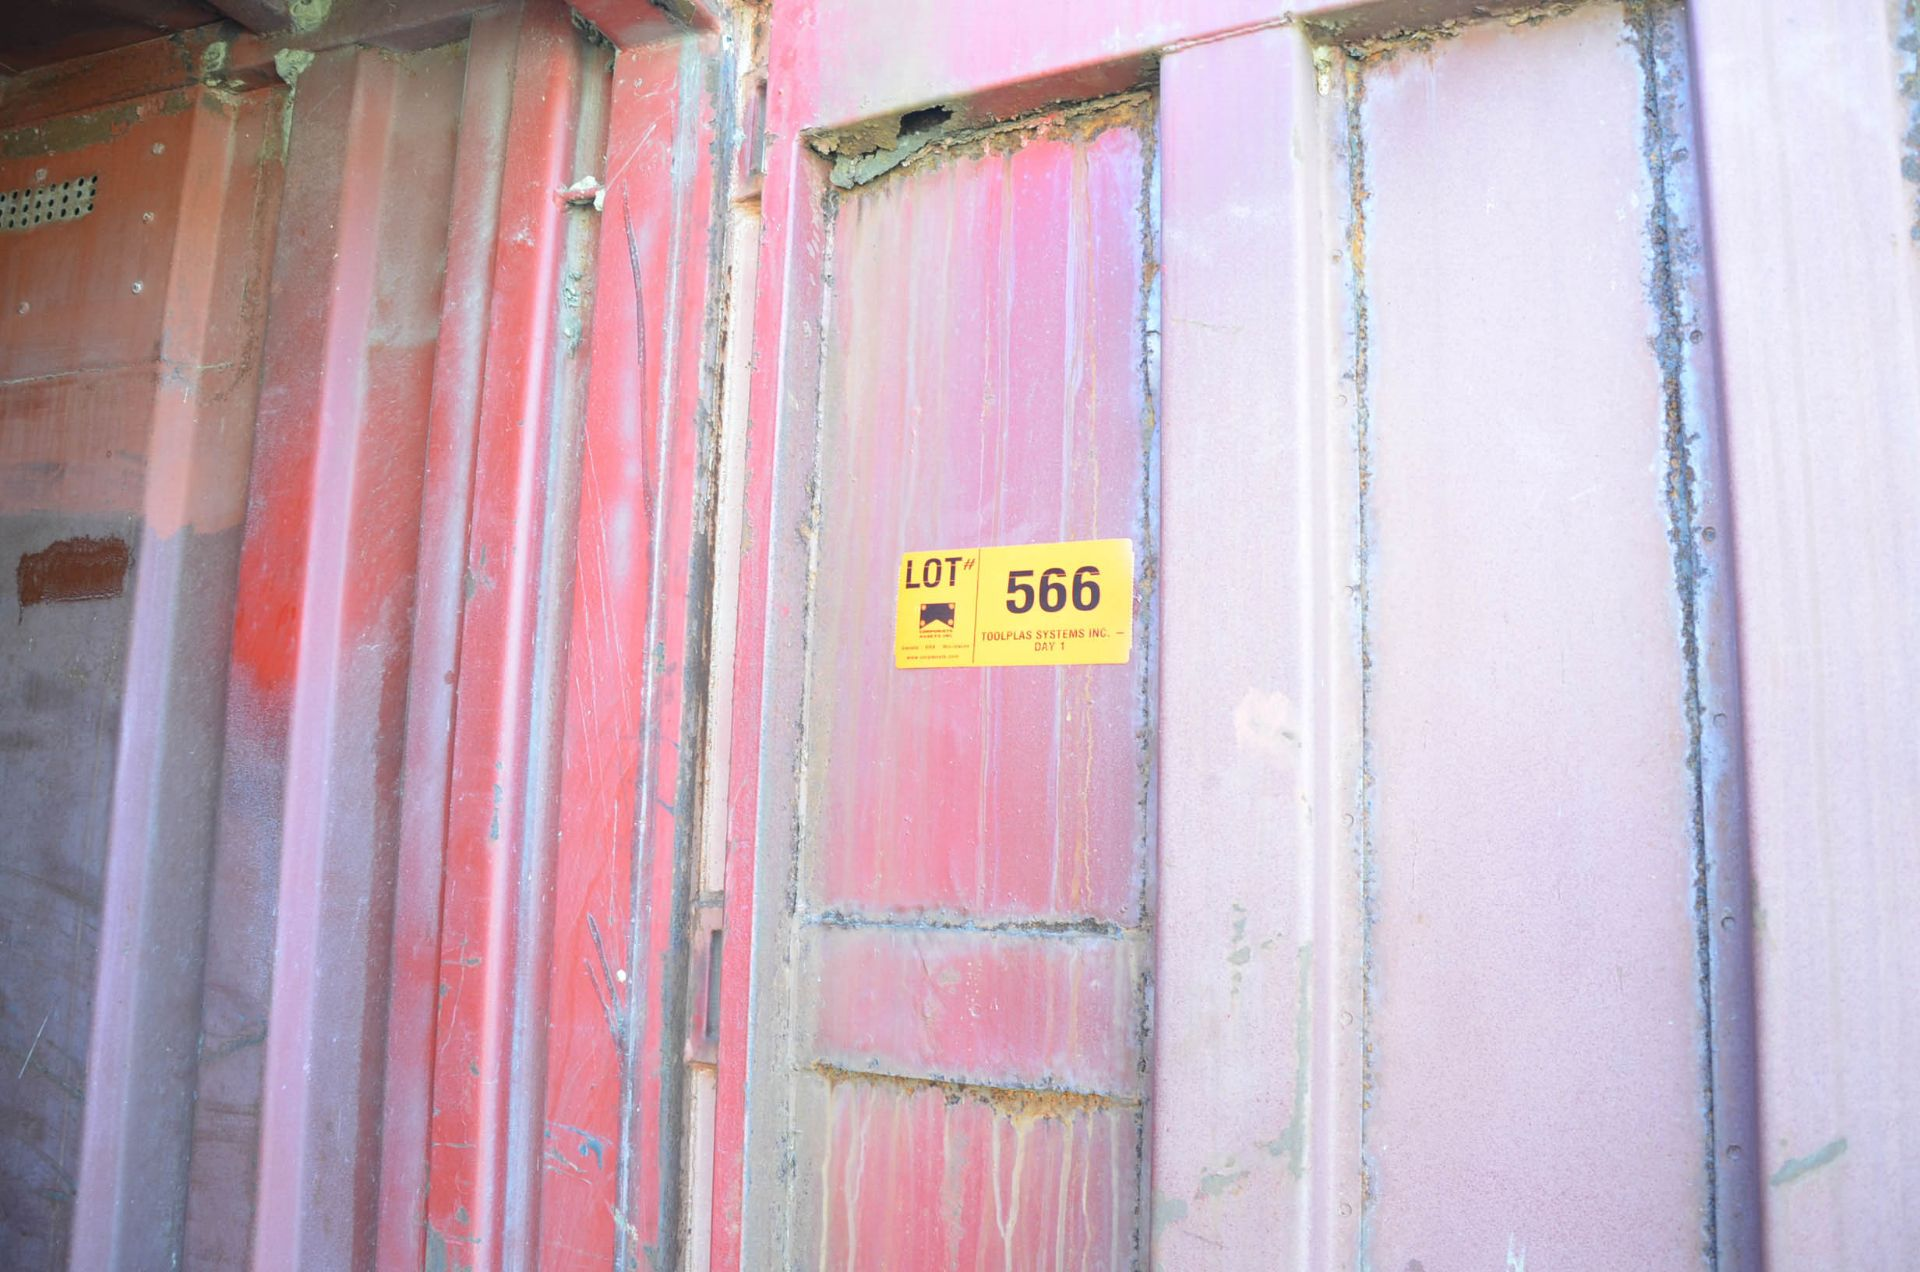 20' STORAGE SEA CONTAINER (SLIGHT DELAY DELIVERY) (CI) [RIGGING FEES FOR LOT #566 - $250 USD PLUS - Image 2 of 2